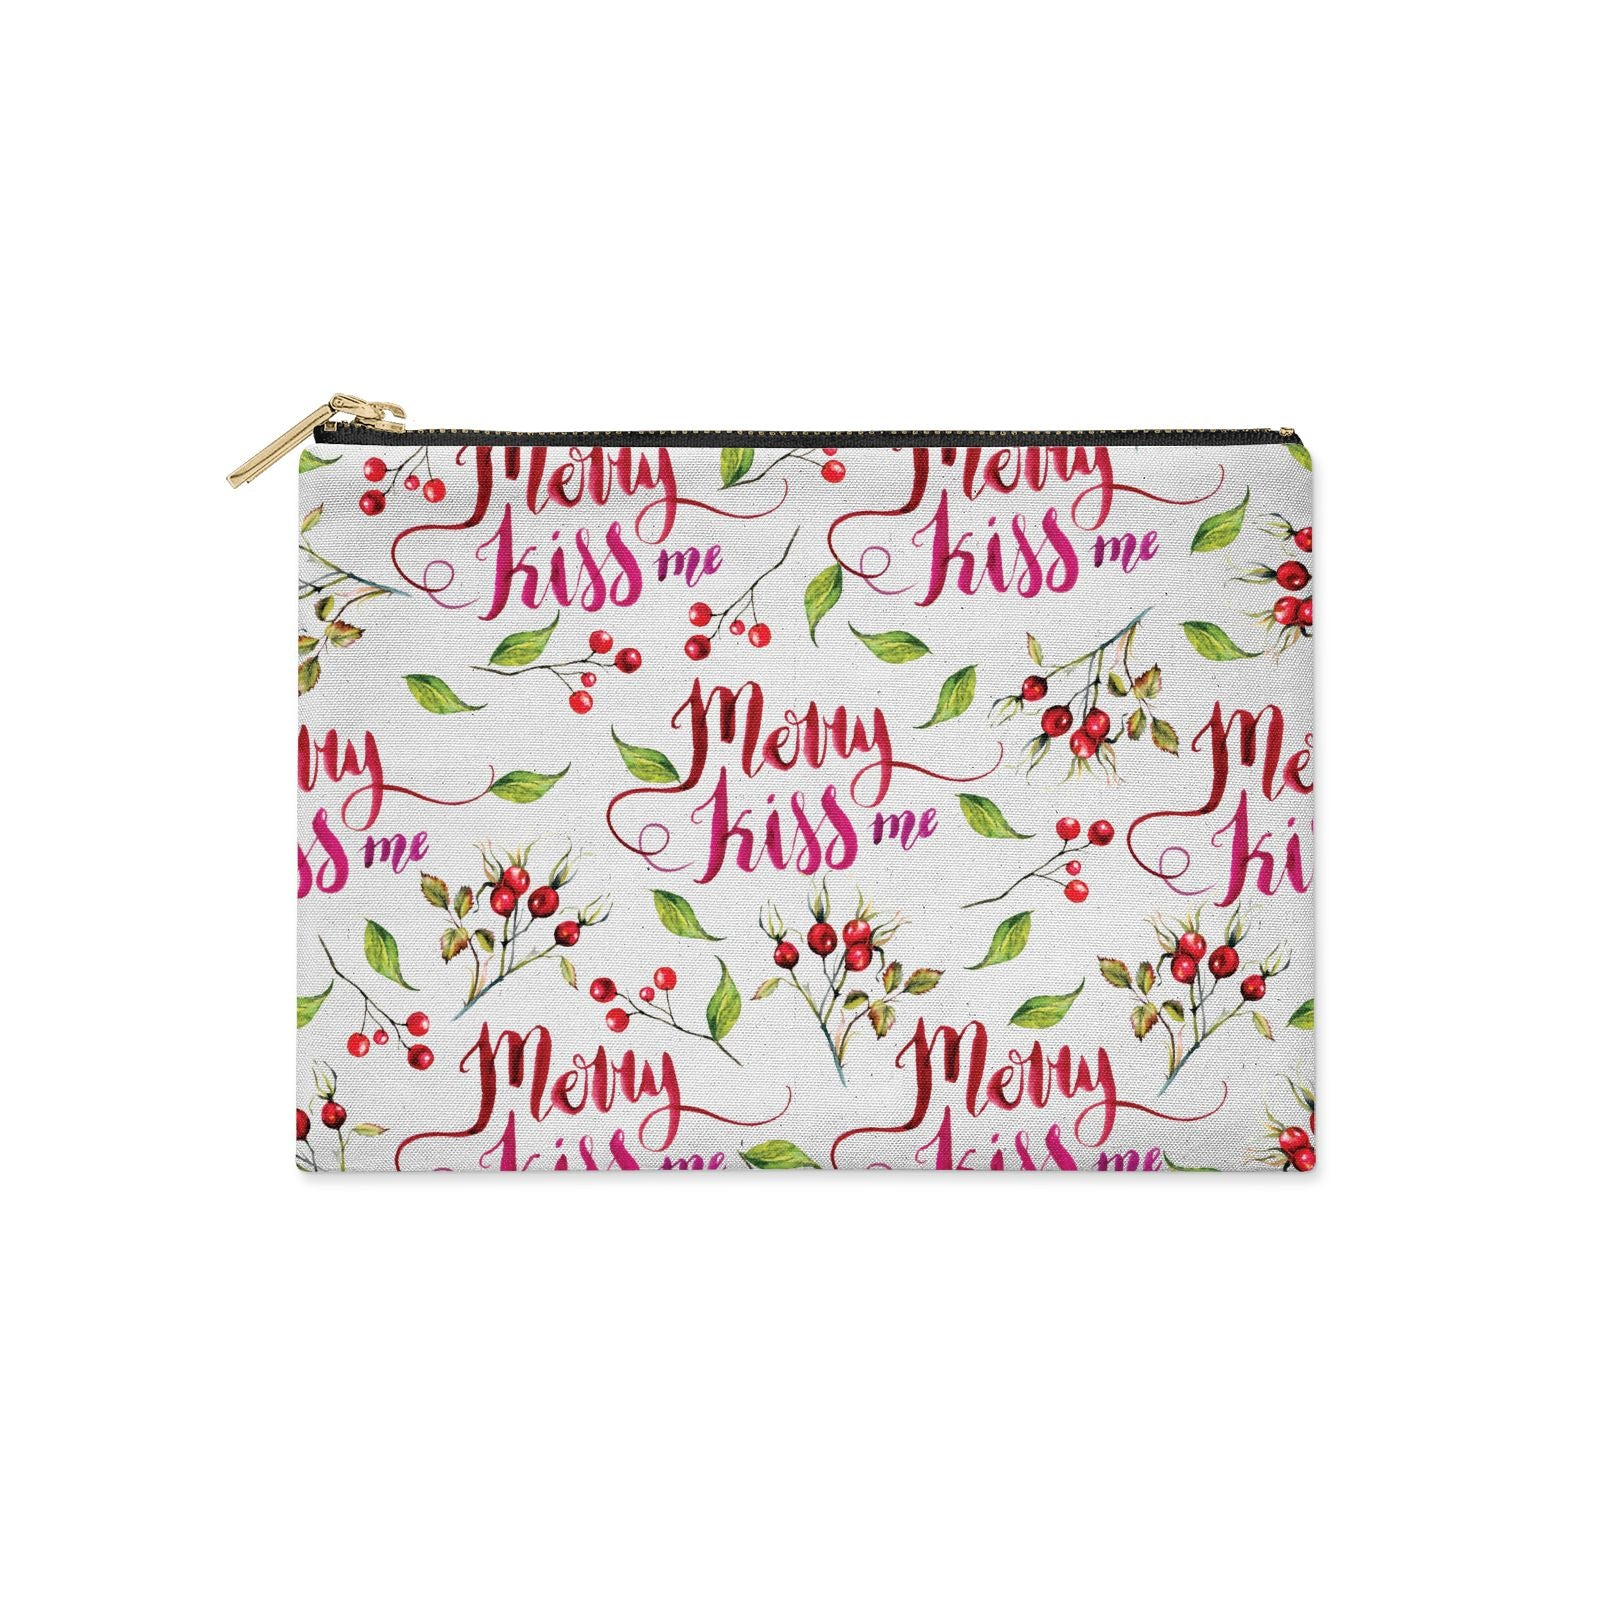 Merry kiss me Clutch Bag Zipper Pouch